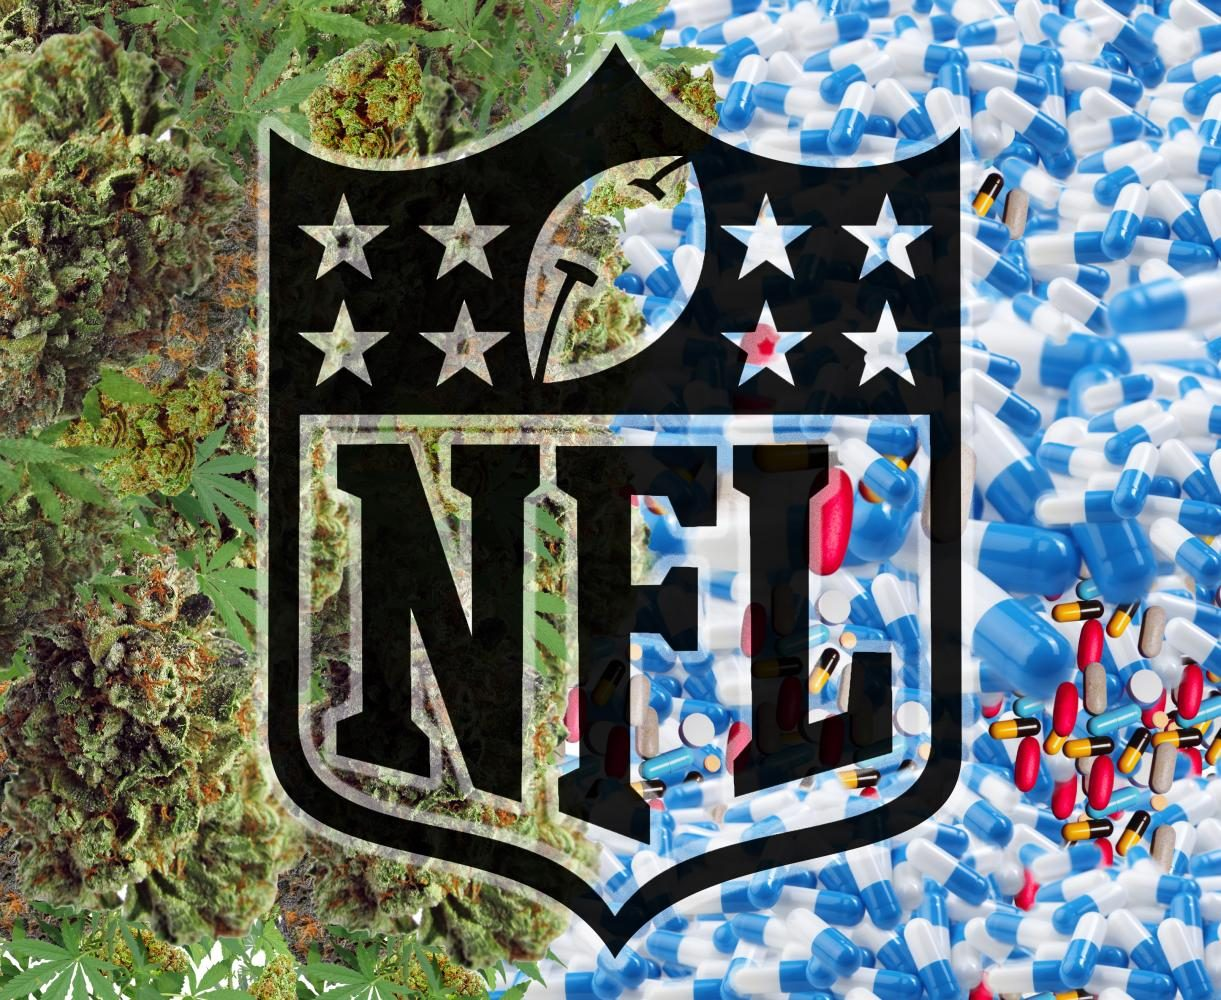 There+has+been+conflict+betweeen+NFL+Commissioner+Roger+Goodell+and+the+NFL+Player%E2%80%99s+Association+about+Marijuana+use.